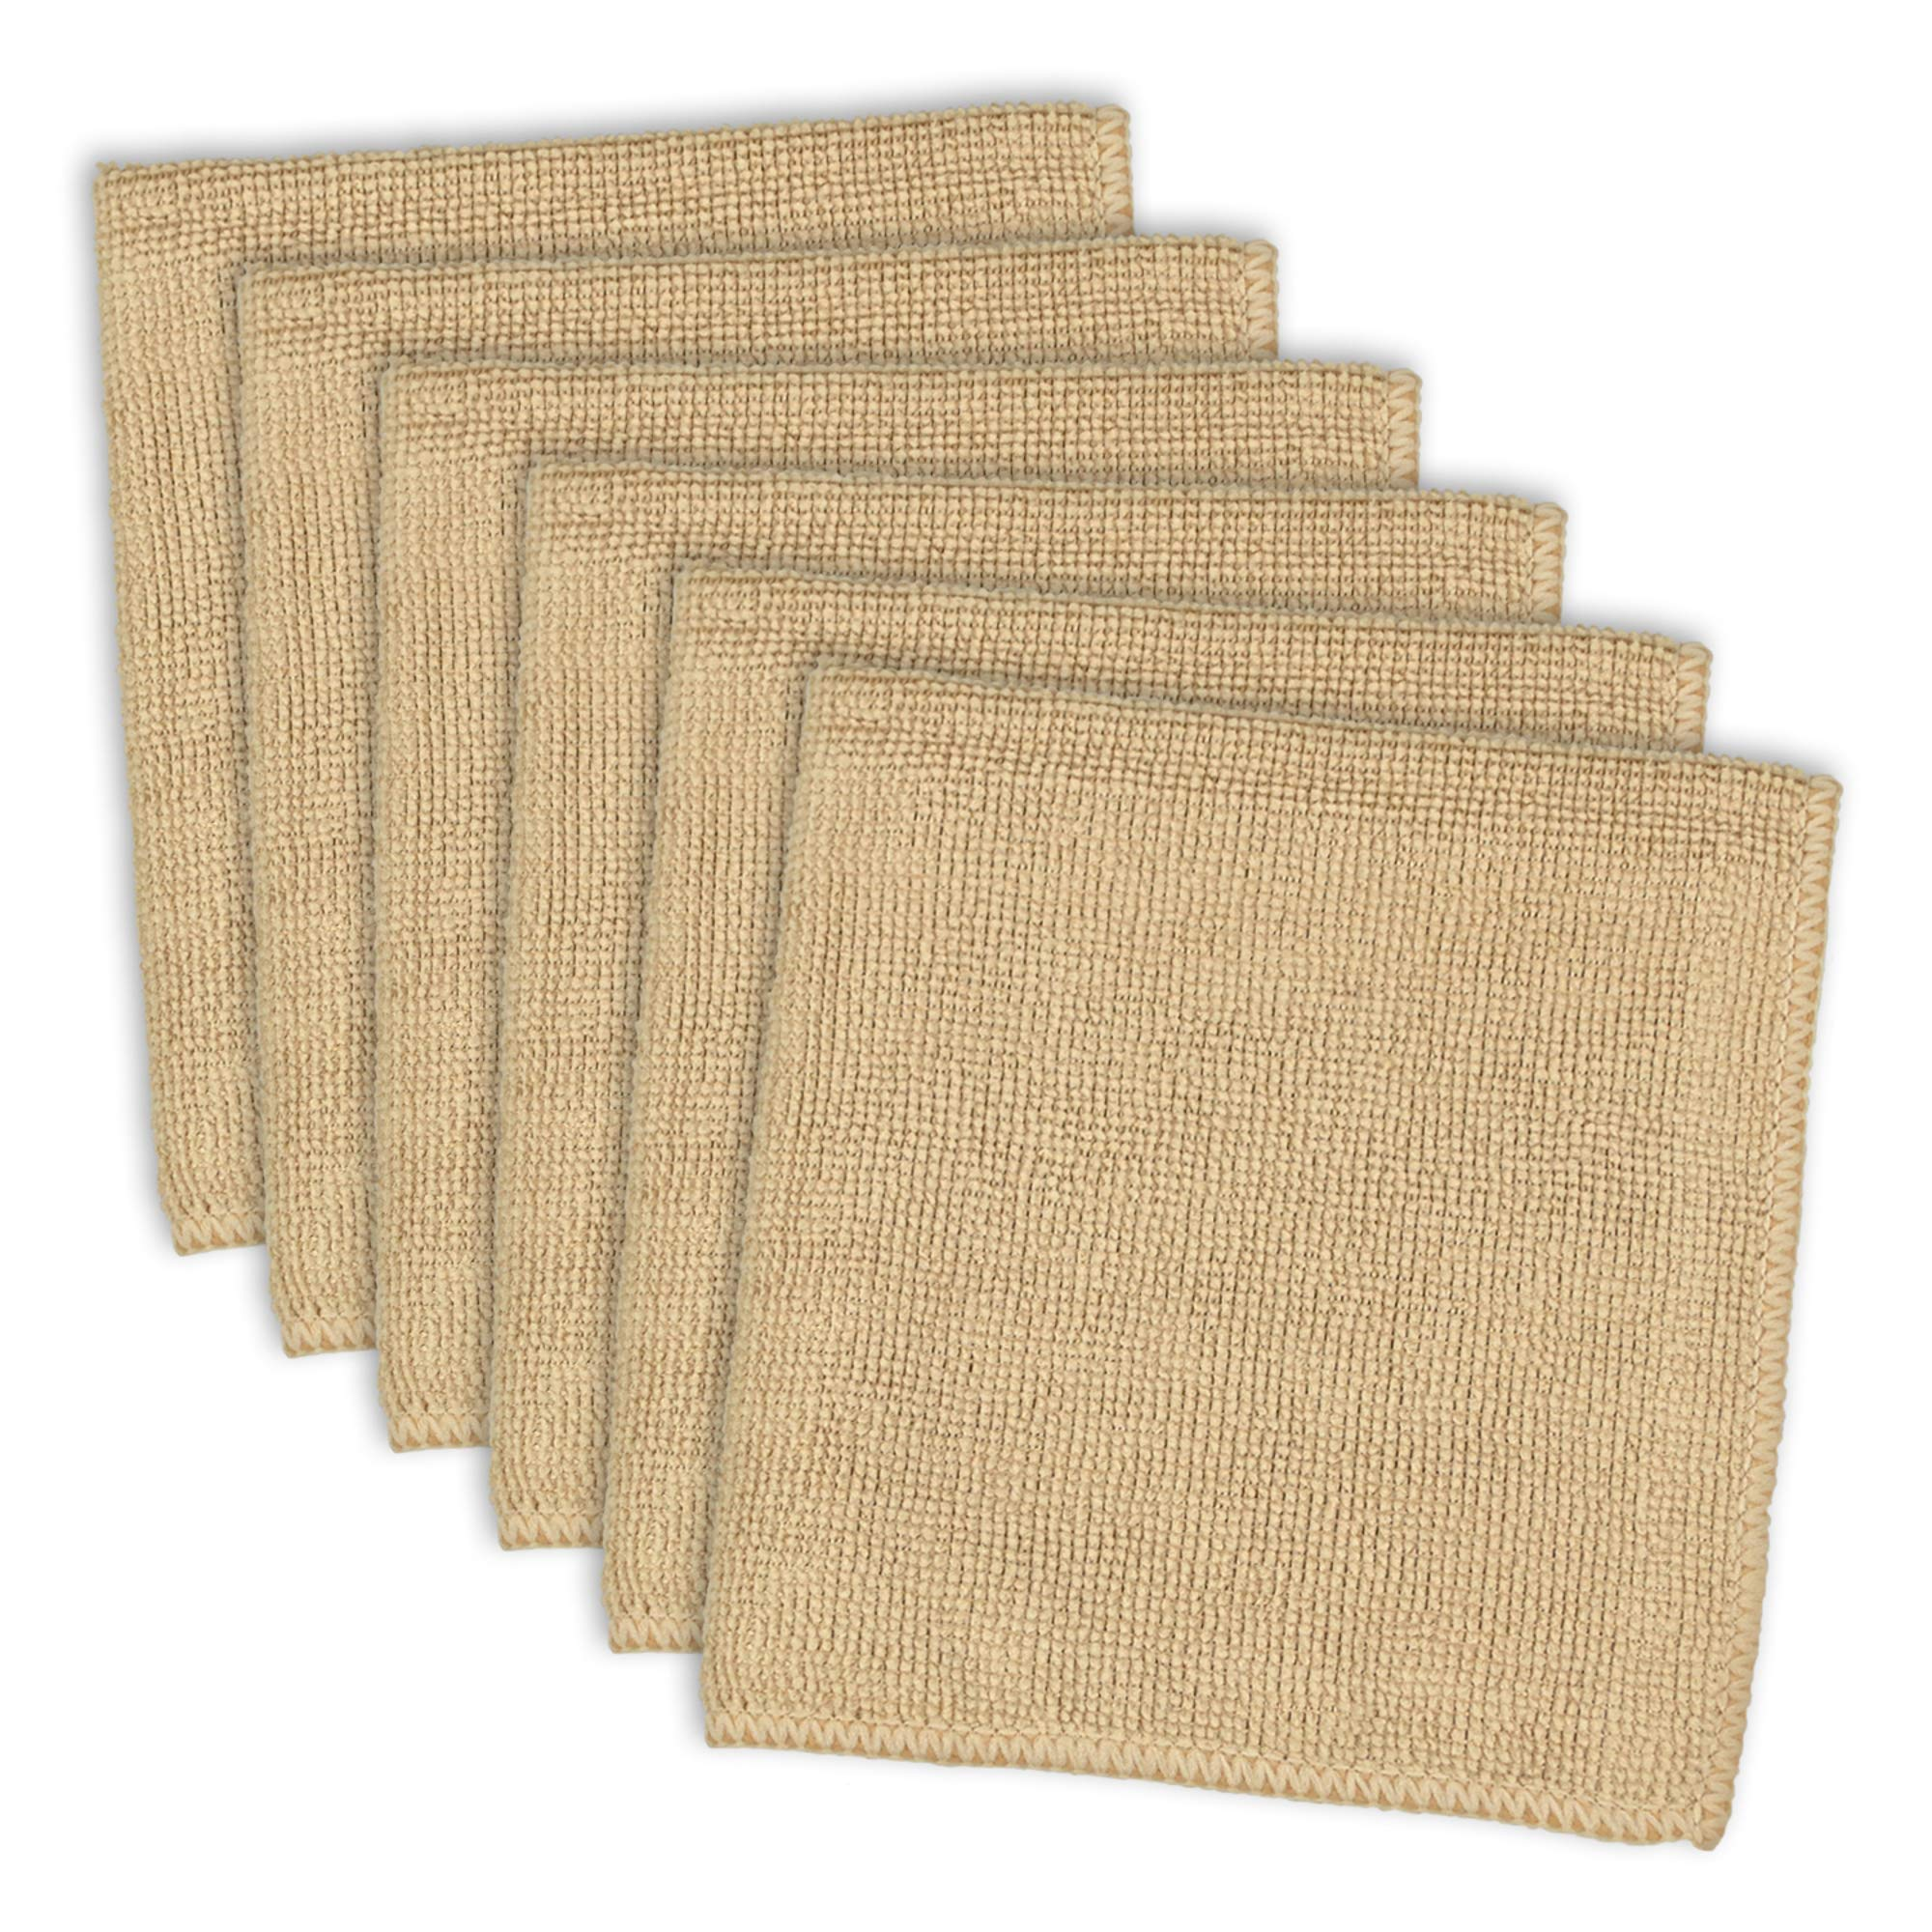 DII Microfiber Multi-Purpose Cleaning Cloths Perfect for Kitchens, Dishes, Car, Dusting, Drying Rags, 12 x 12, Set of 6 - Taupe